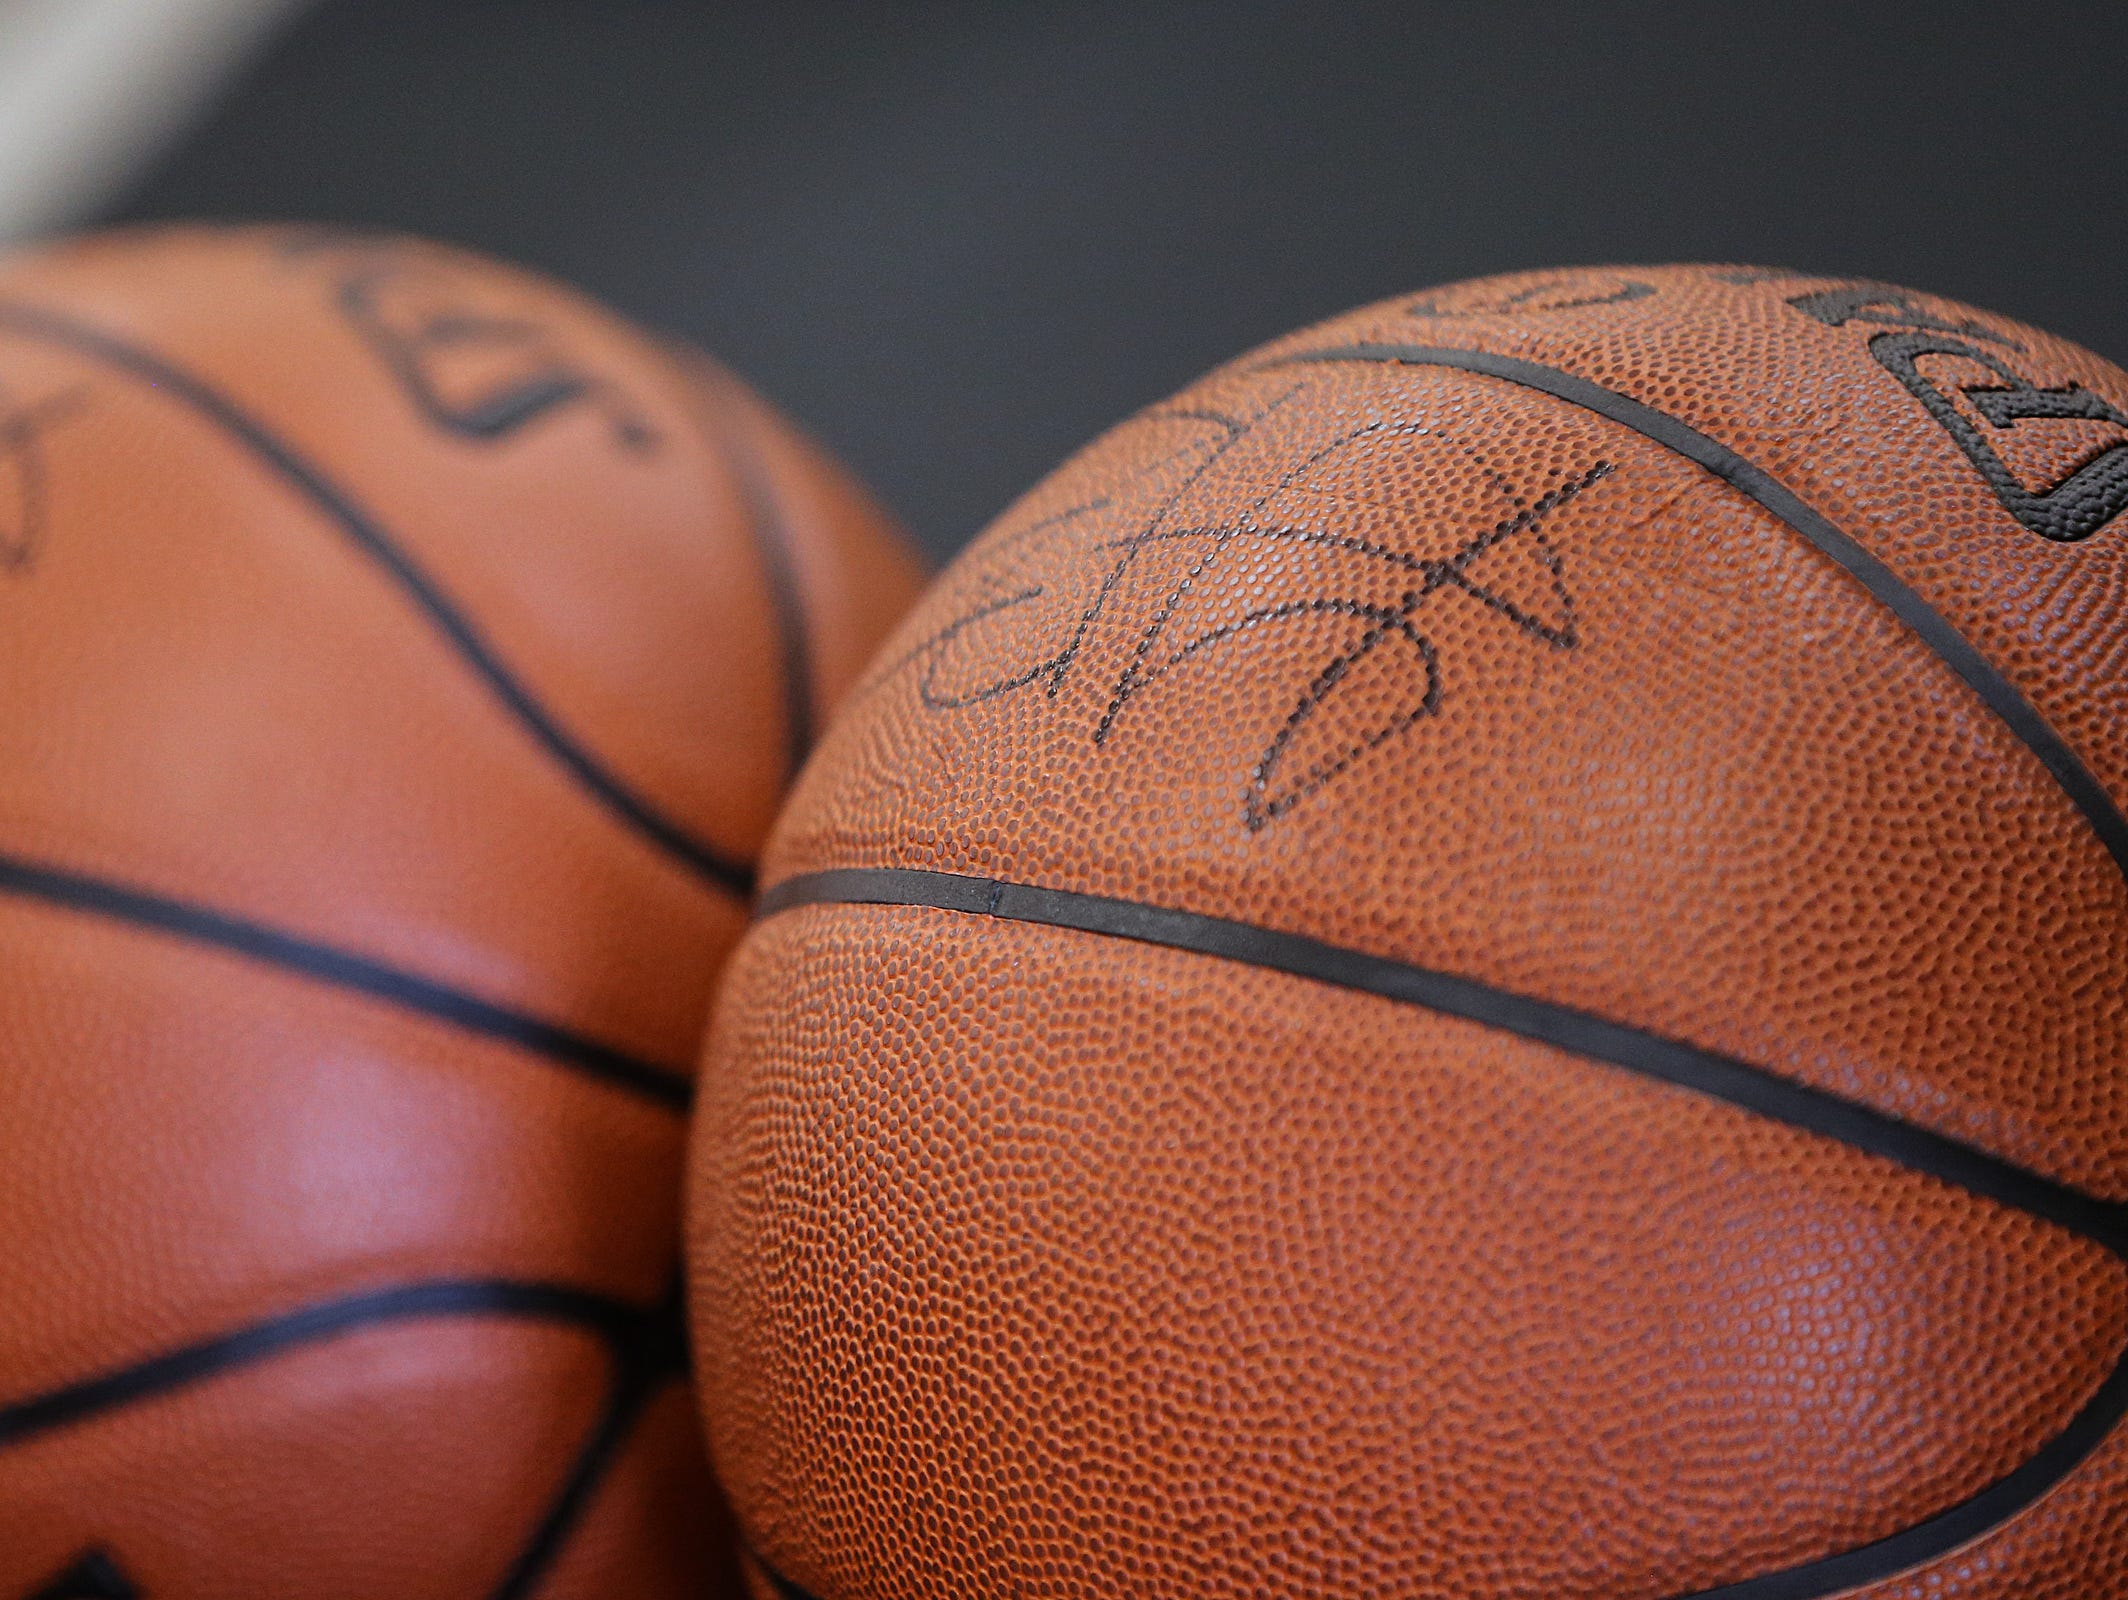 Join us Nov. 15 for a night of live storytelling: Tales of Our Basketball Obsession.